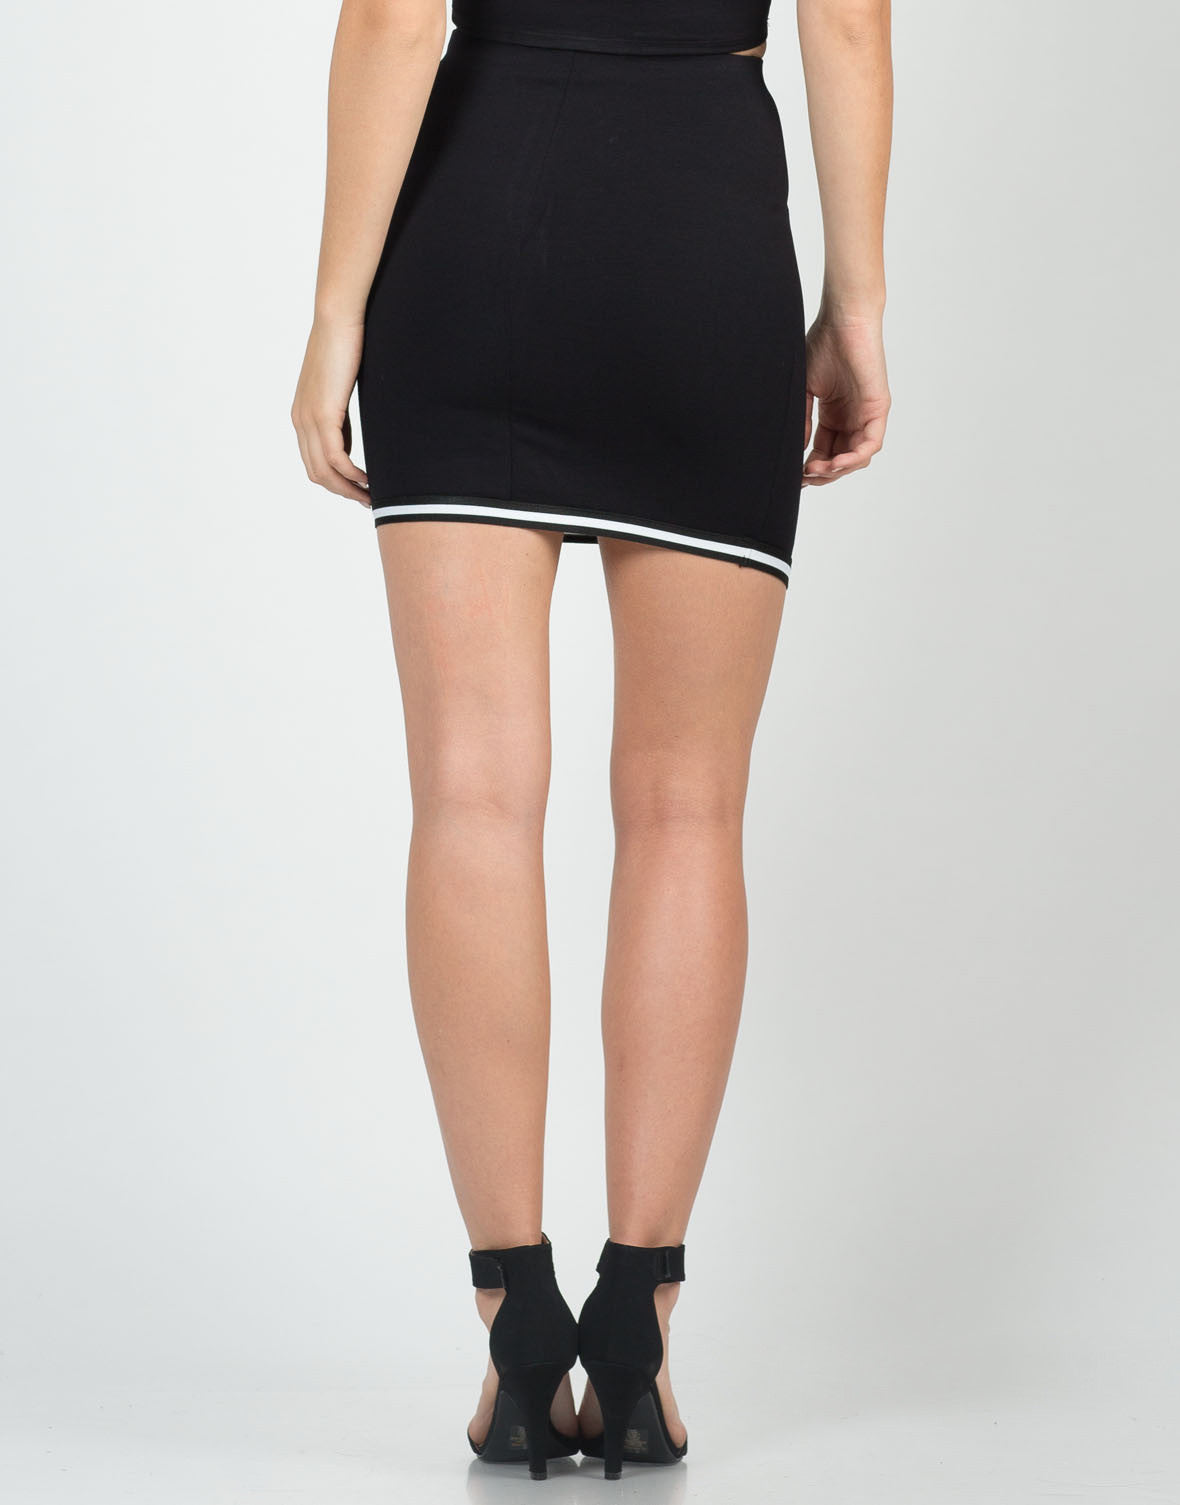 Back View of Sporty Asymmetrical Skirt